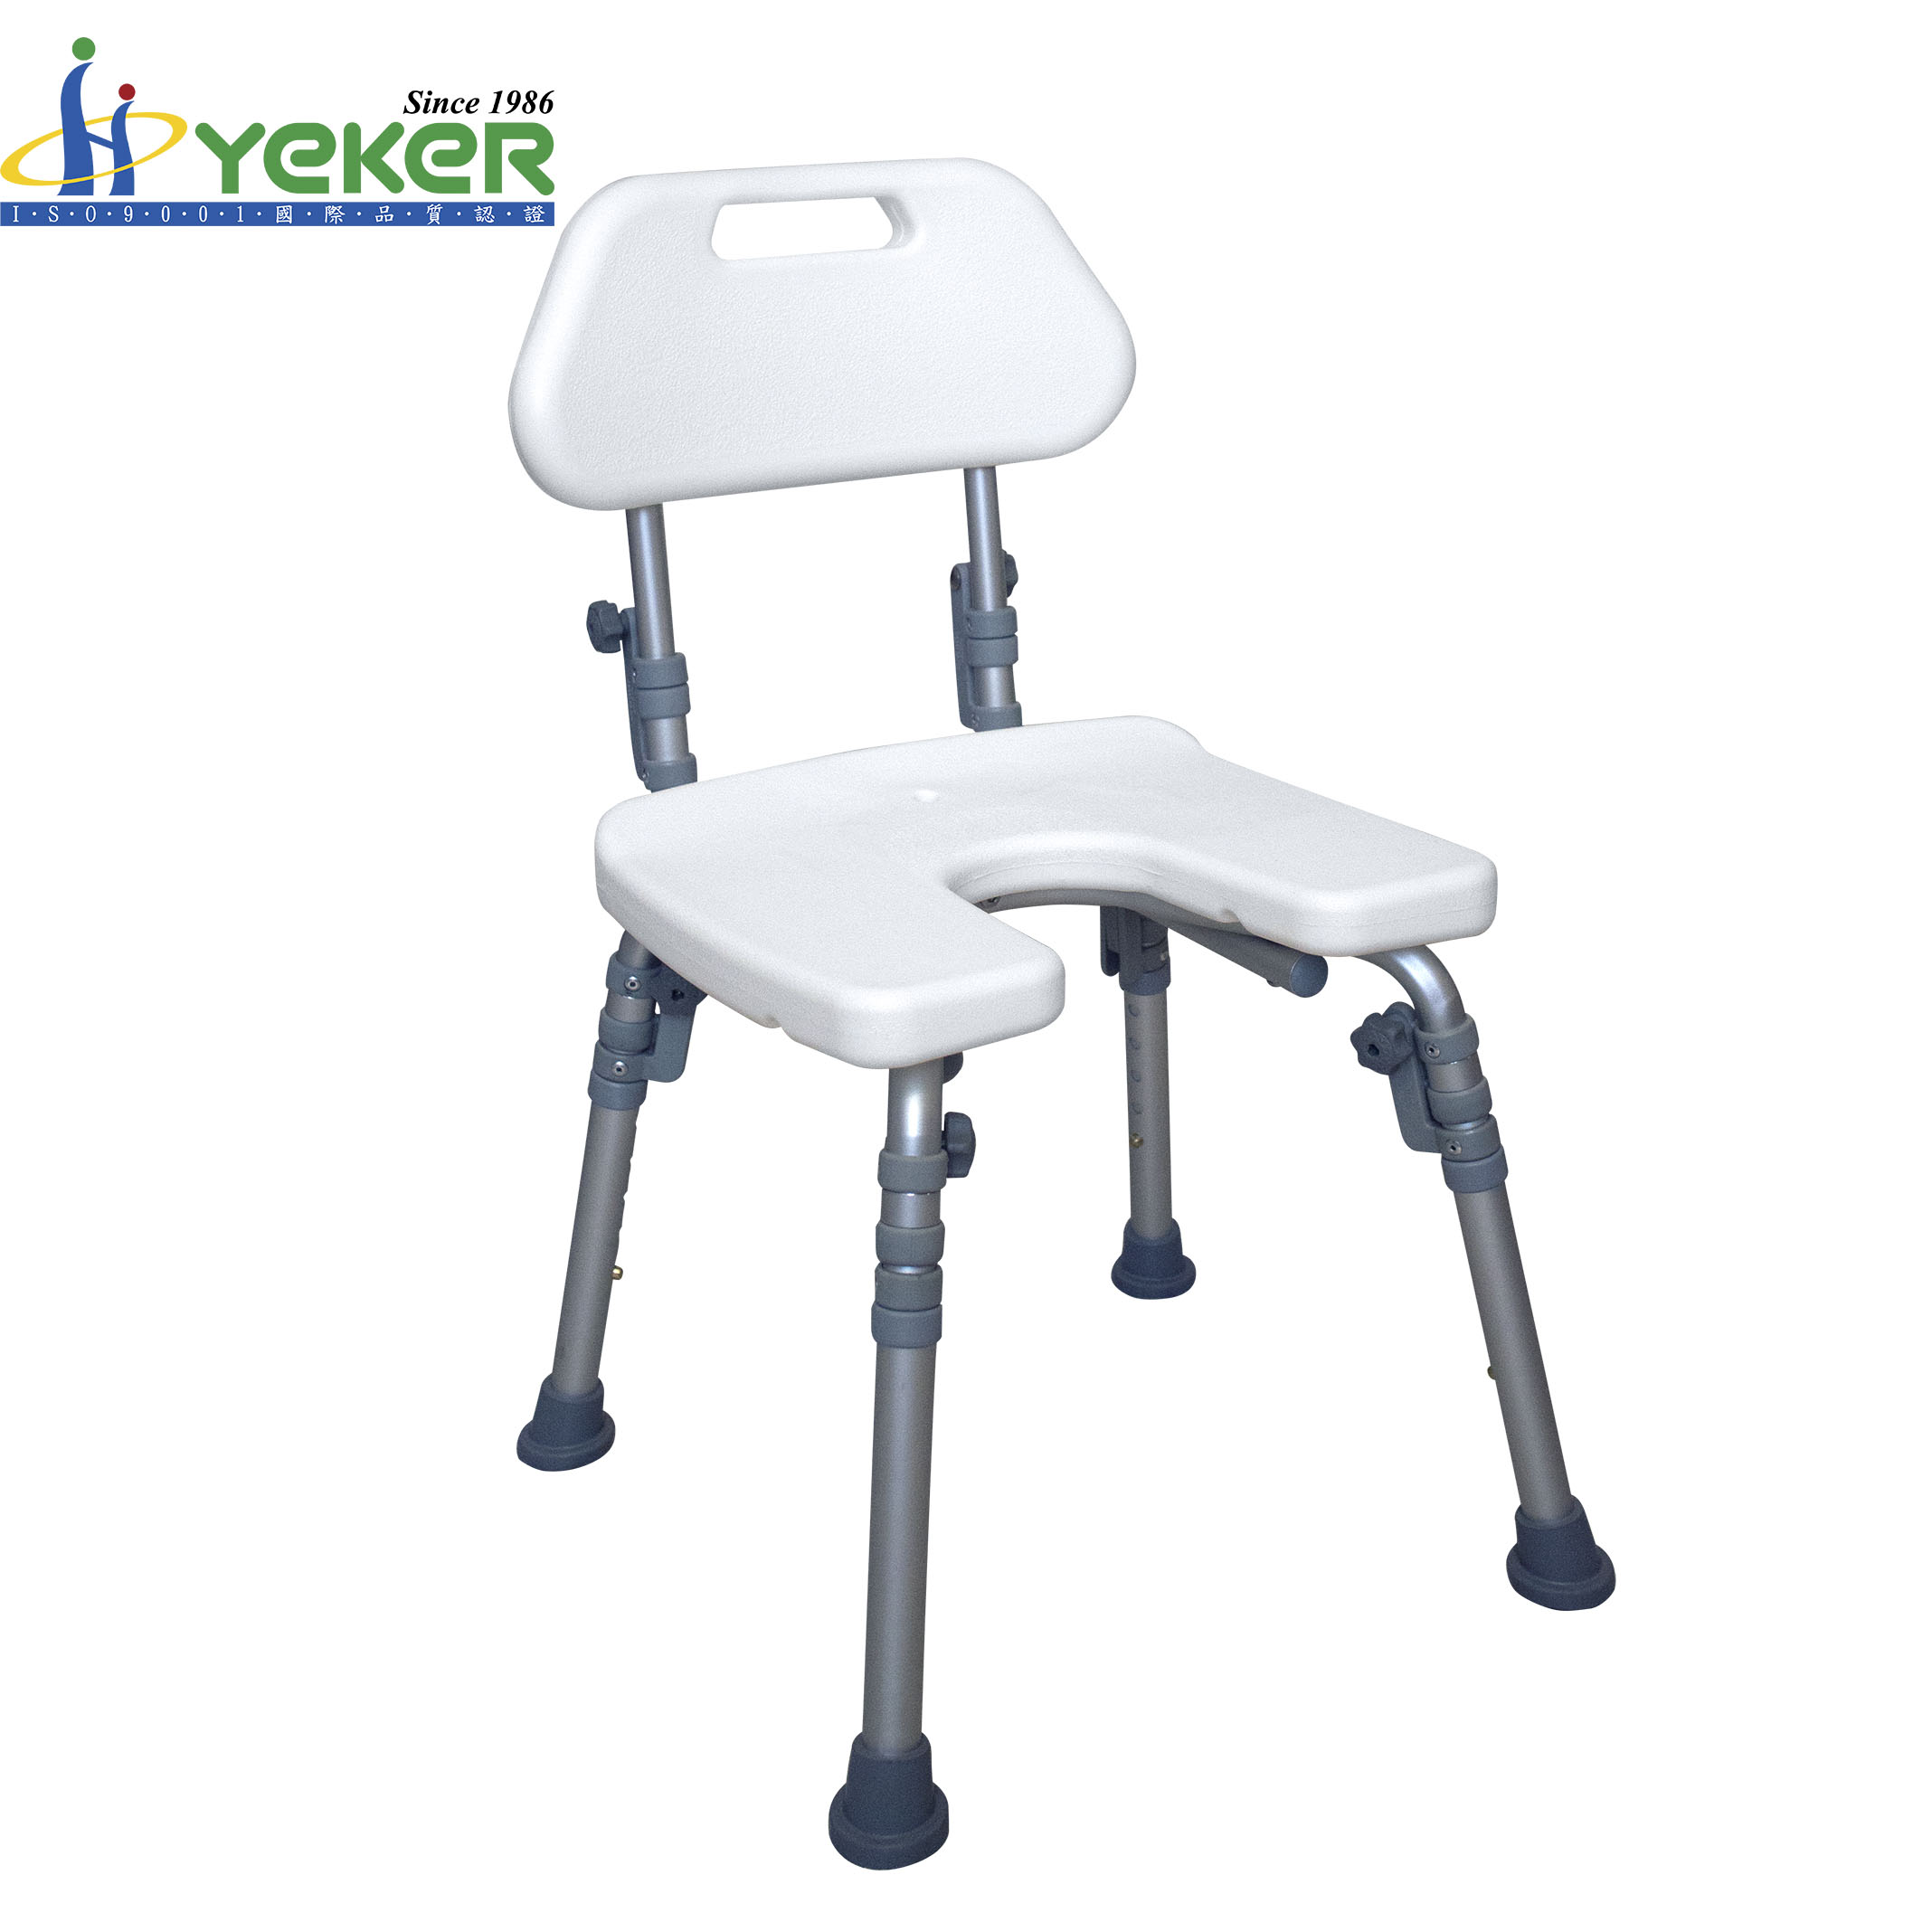 Adjustable Shower Seat Adjustable Folding Shower Chair Bath Chair For The Elderly And Disabled Elderly Folding Chair Buy Furniture For Disabled